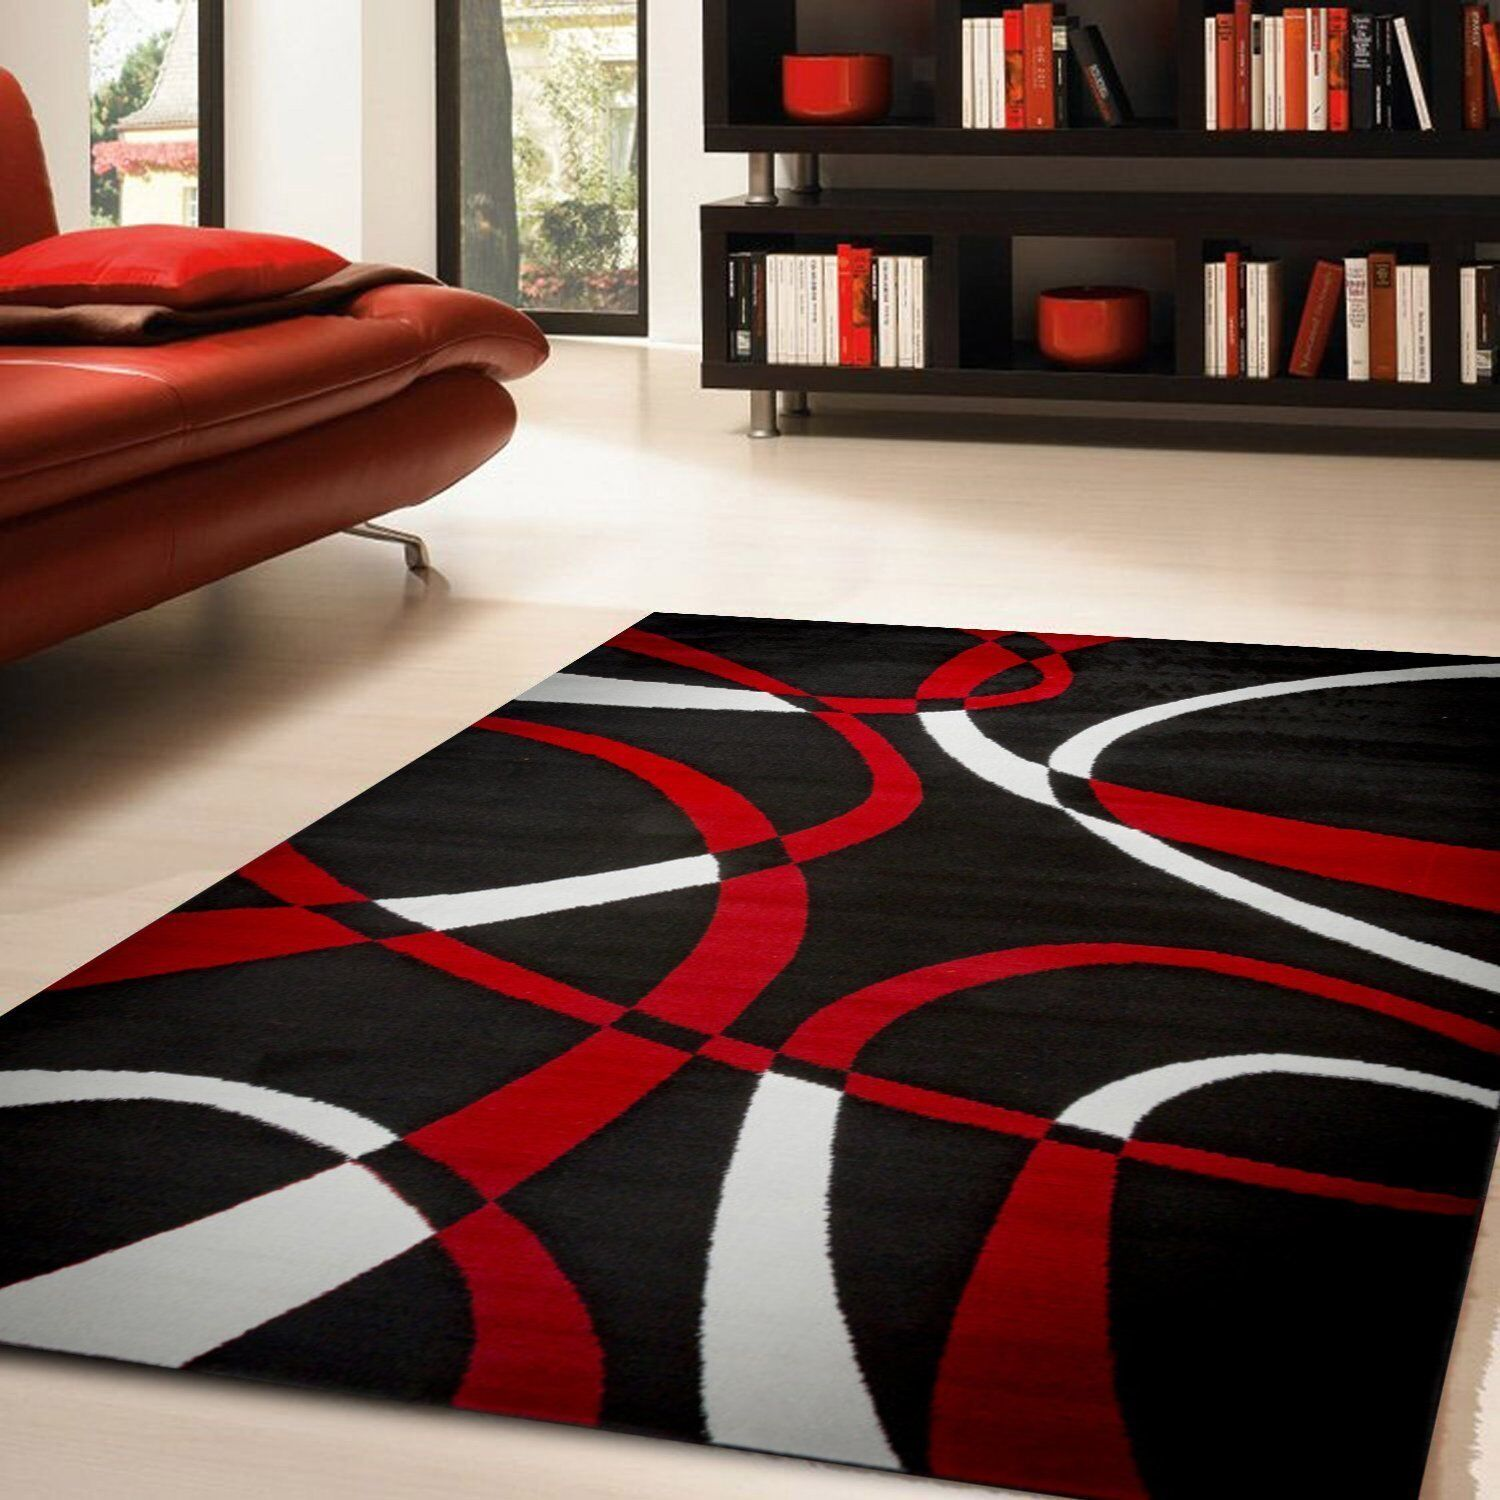 Black Area Rug Modern Carpet Stain Resistant Living Room Home Decor 5 X 7 For Sale Online Ebay